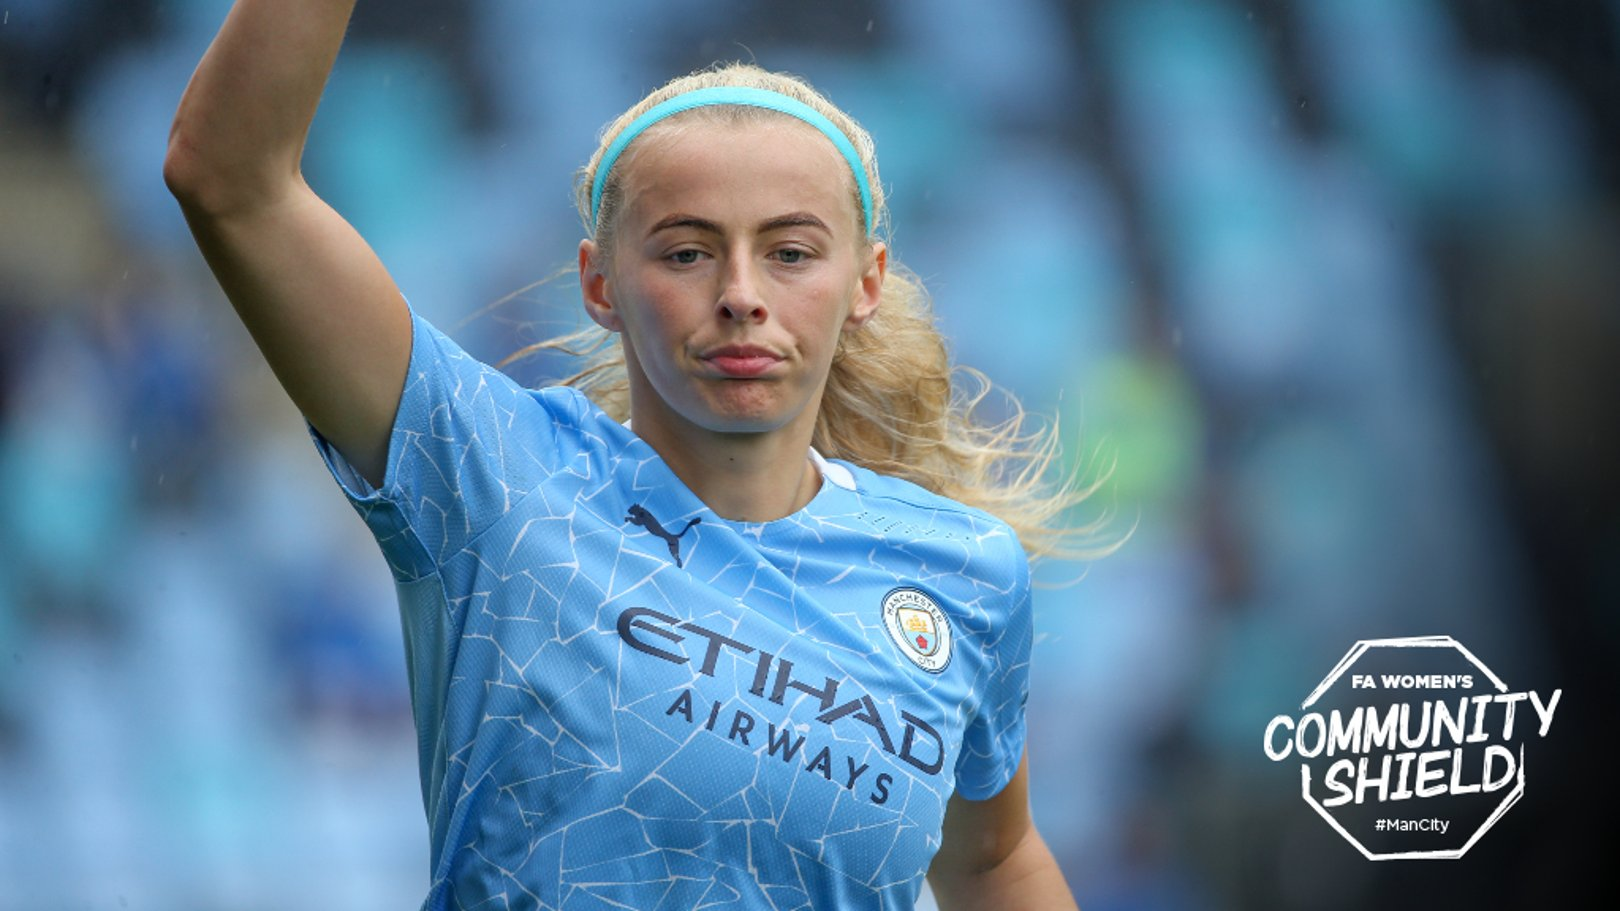 Kelly loving life as part of the 'City family'